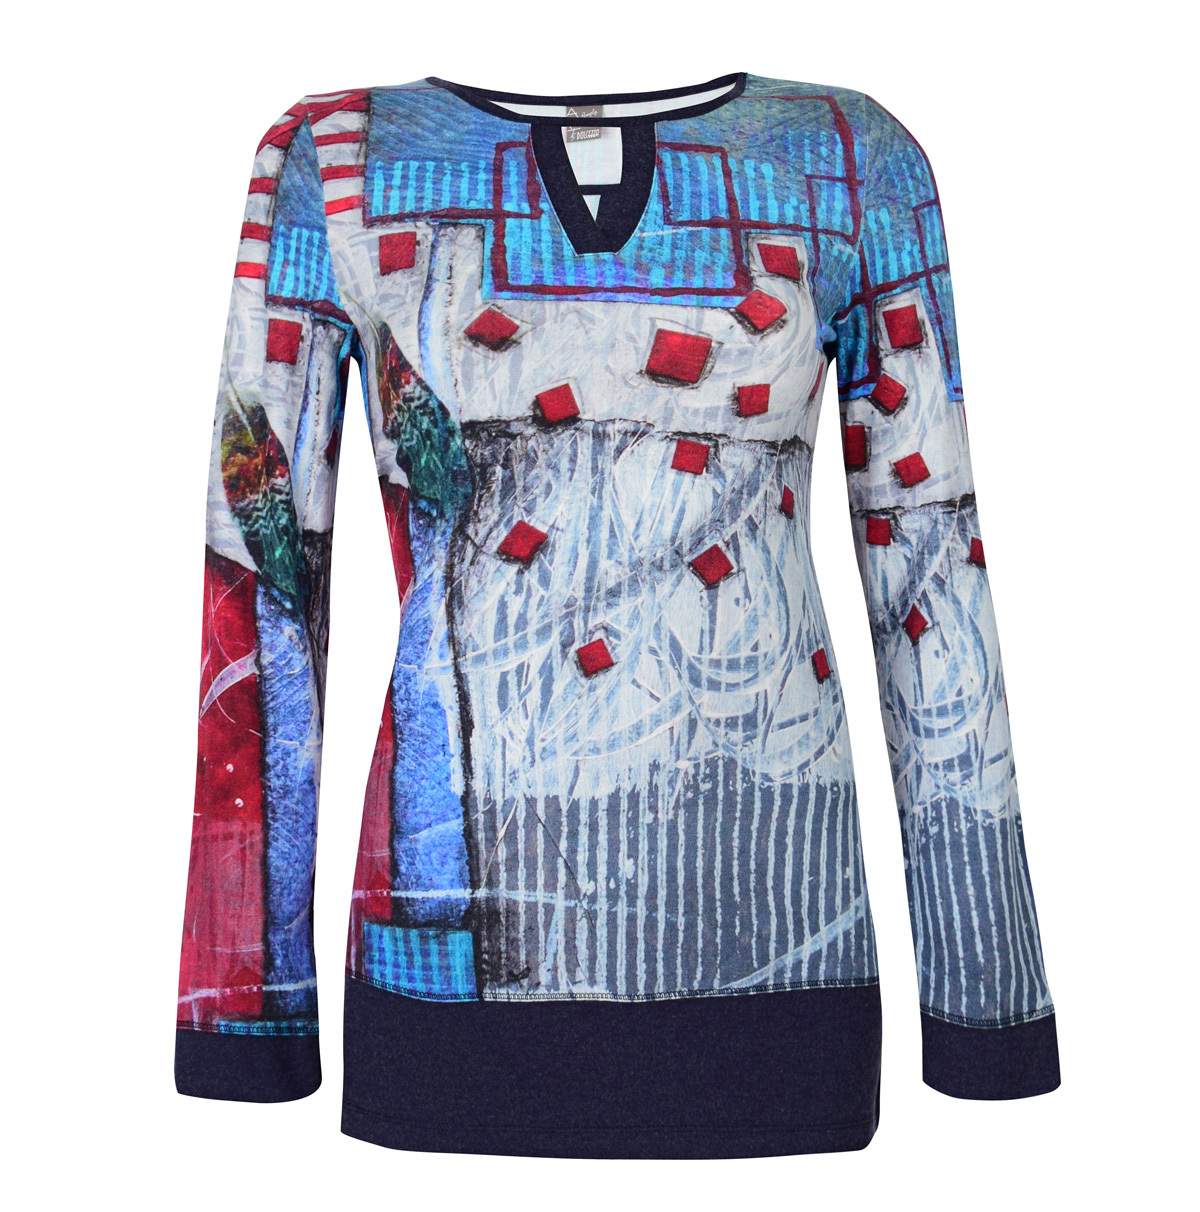 Simply Art Dolcezza: Only Love Spiritually Square Abstract Art Tunic Dolcezza_SimplyArt_59662